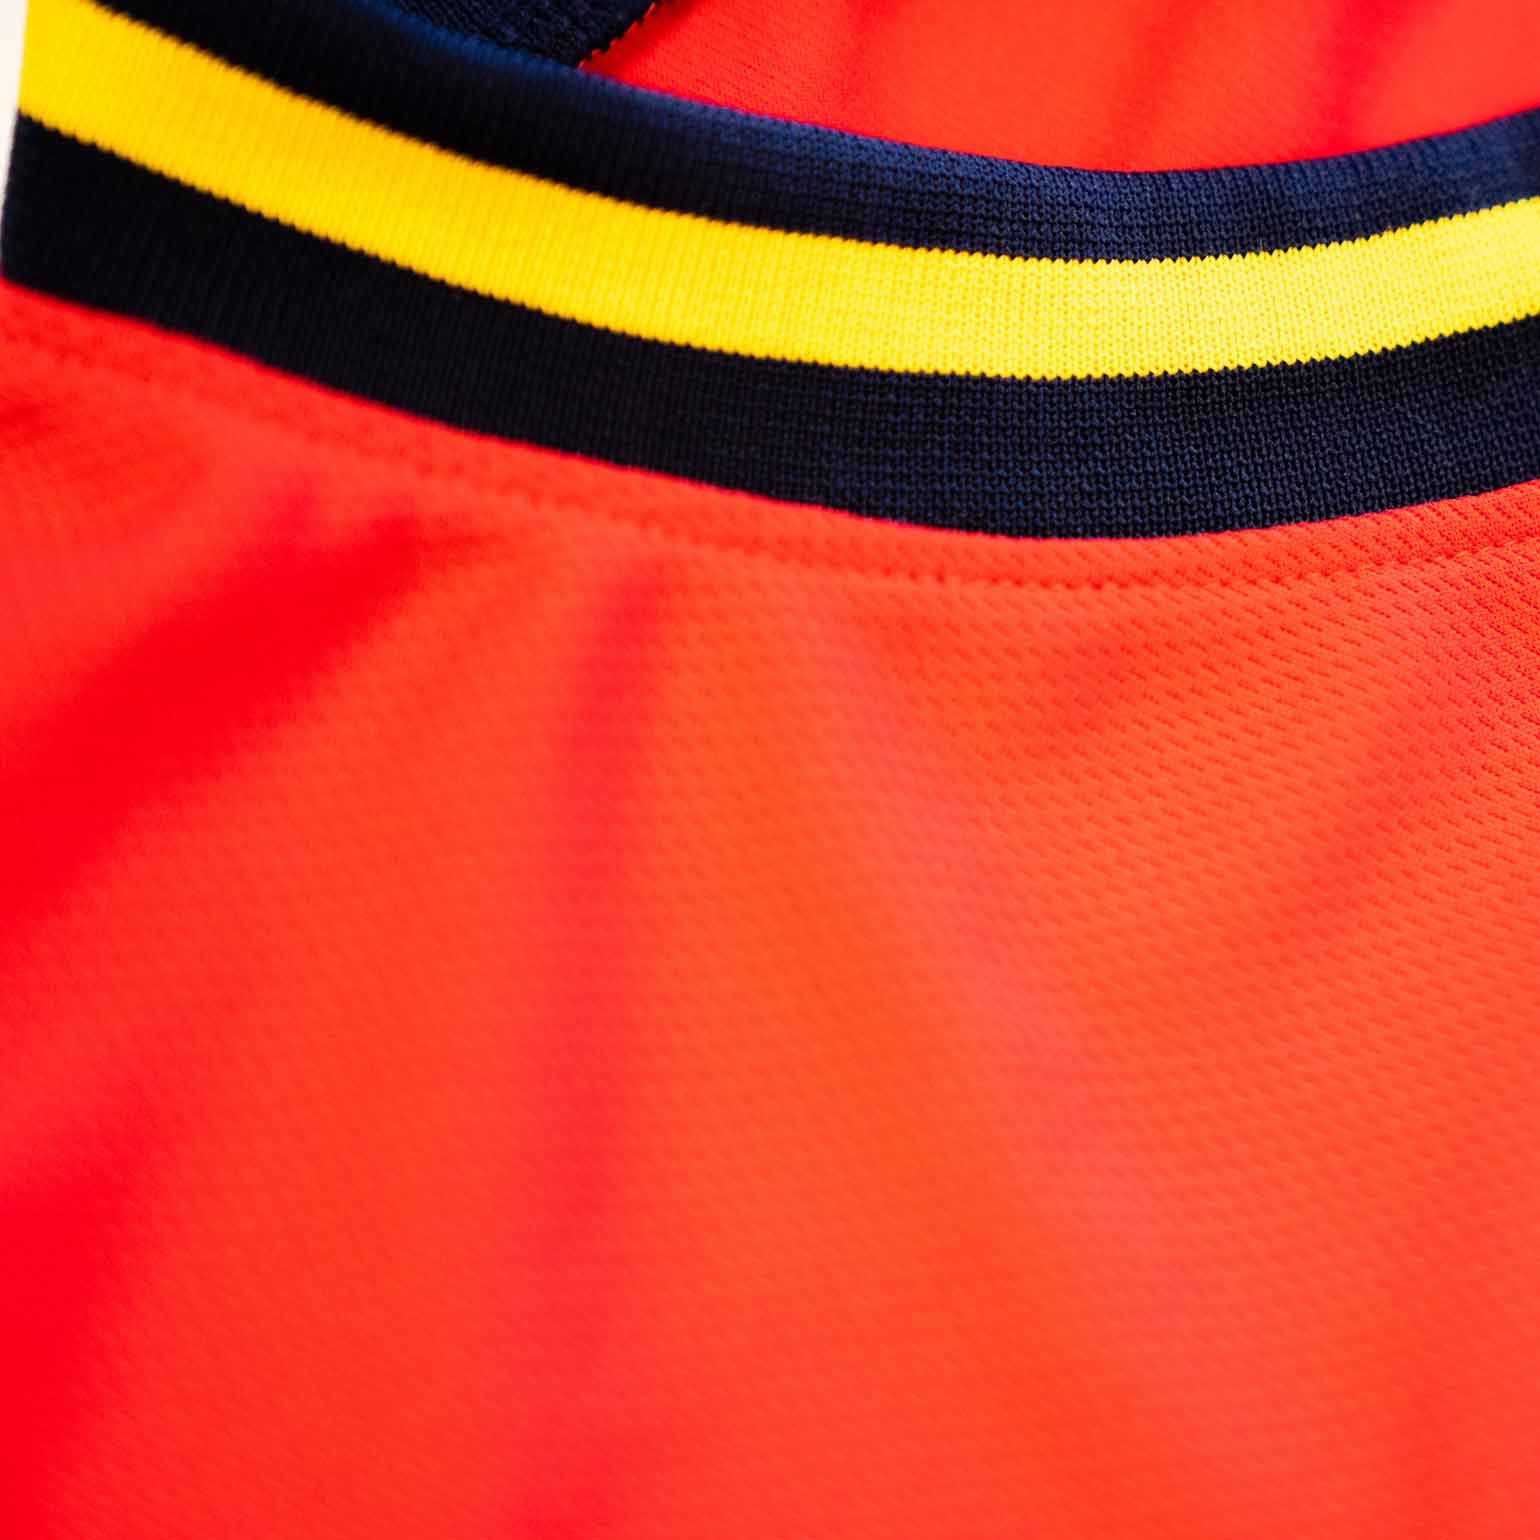 TLN x Maryland Retro Replica Jersey